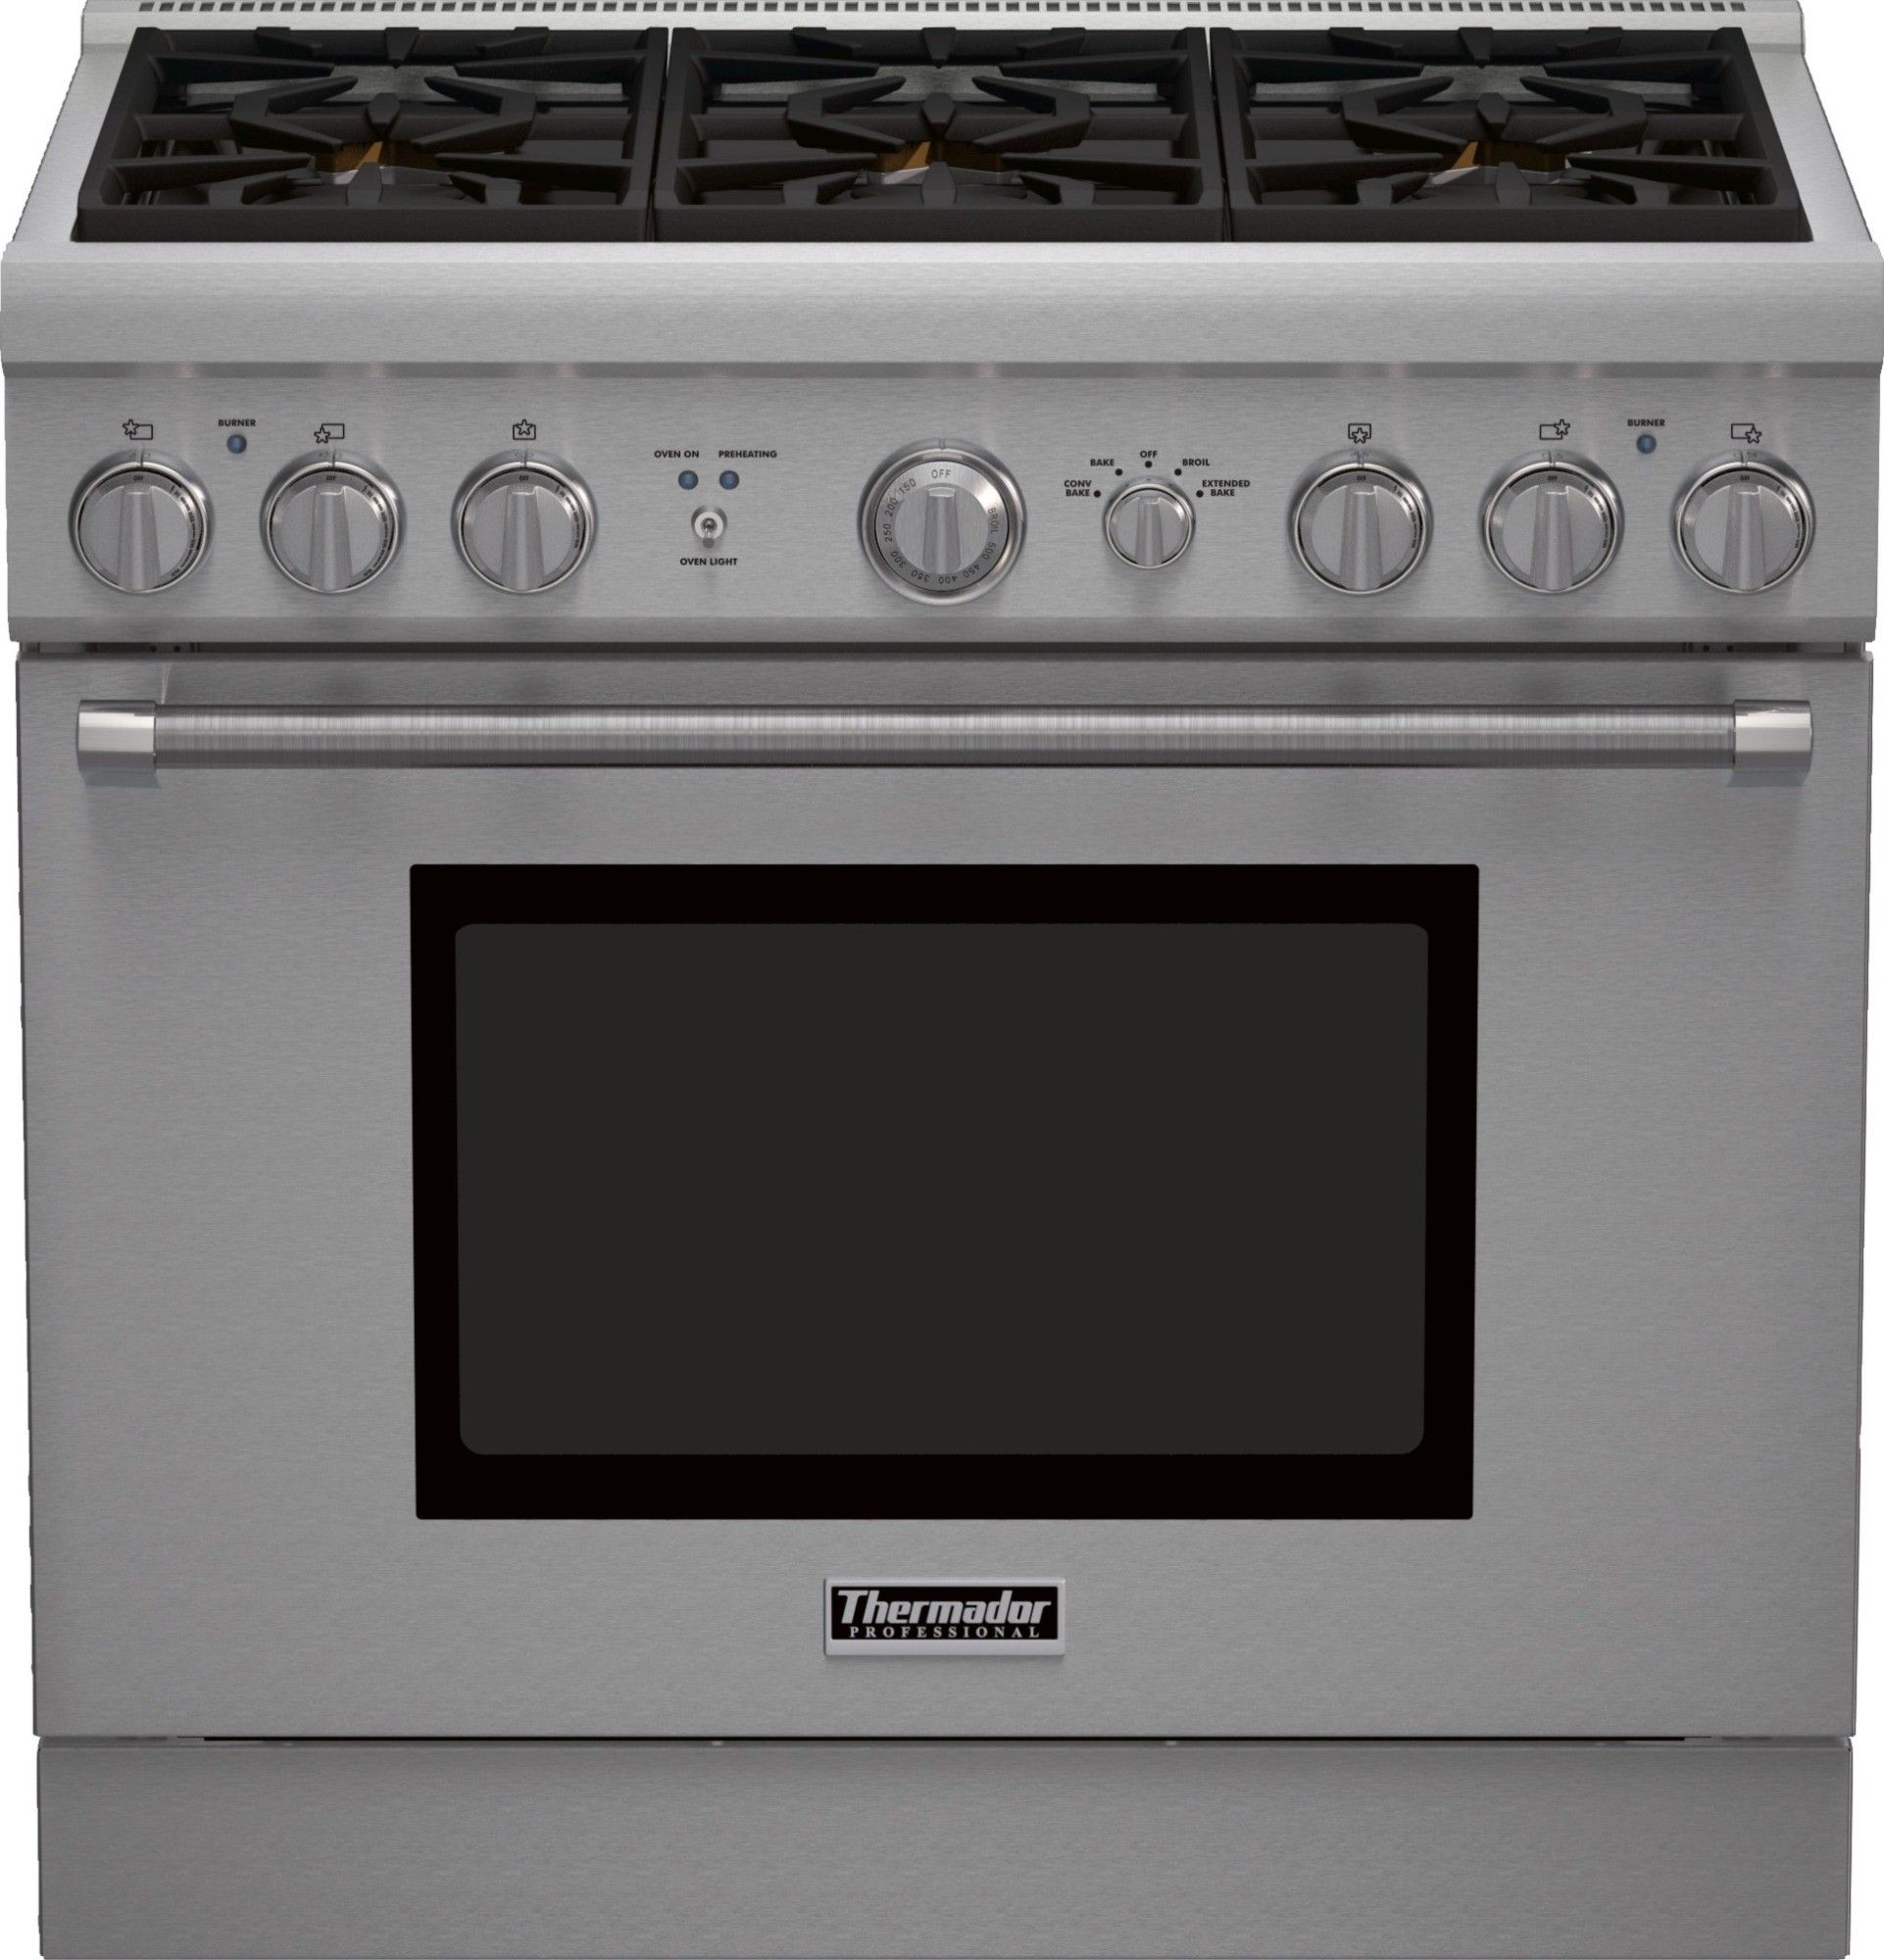 "PRG366GH | Thermador Pro Harmony 36"" Gas Range - Natural Gas"